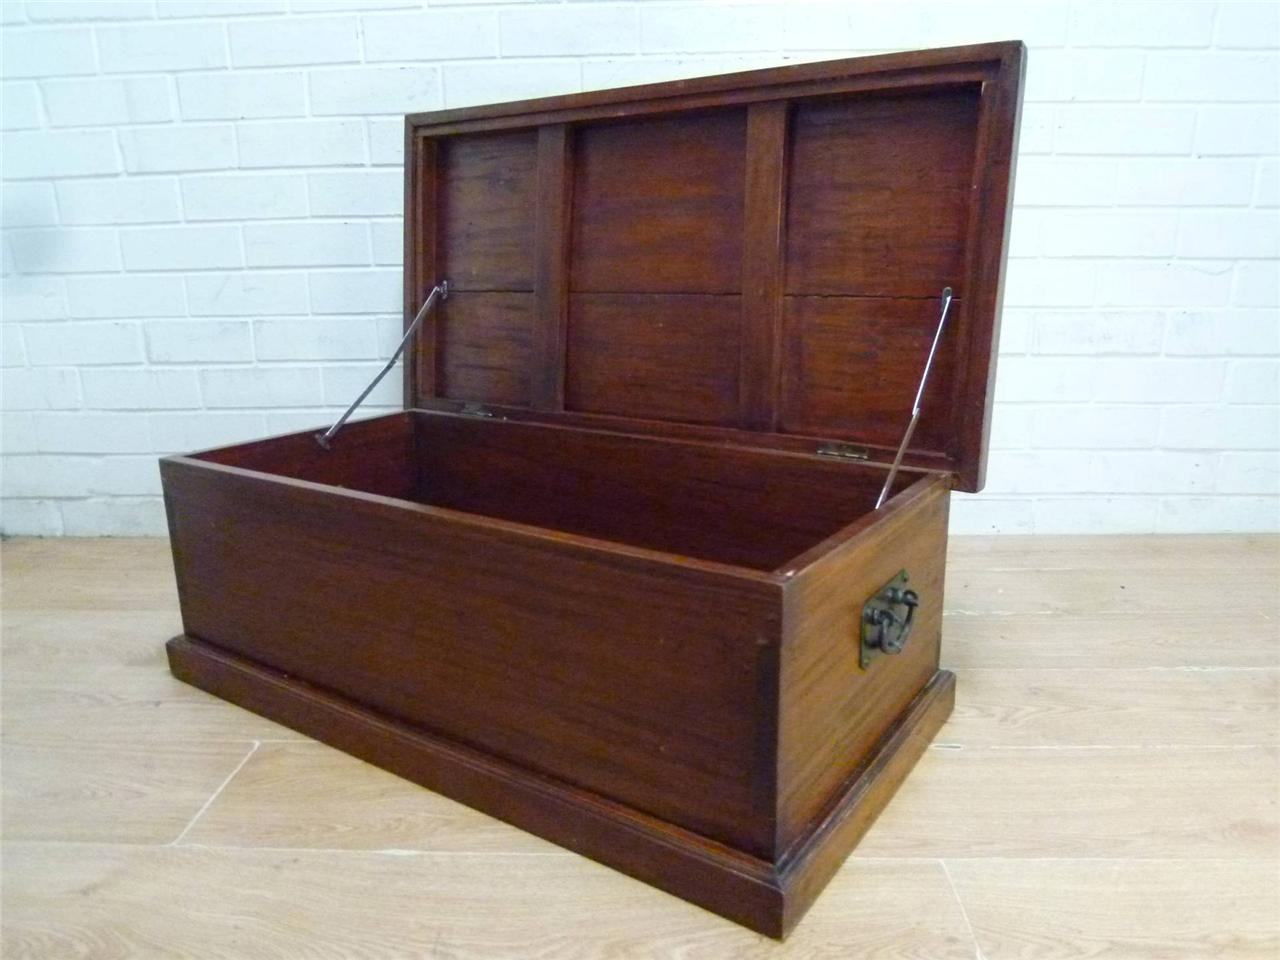 Period rustic solid mahogany storage chest trunk coffee table toy box ebay Coffee table storage chest